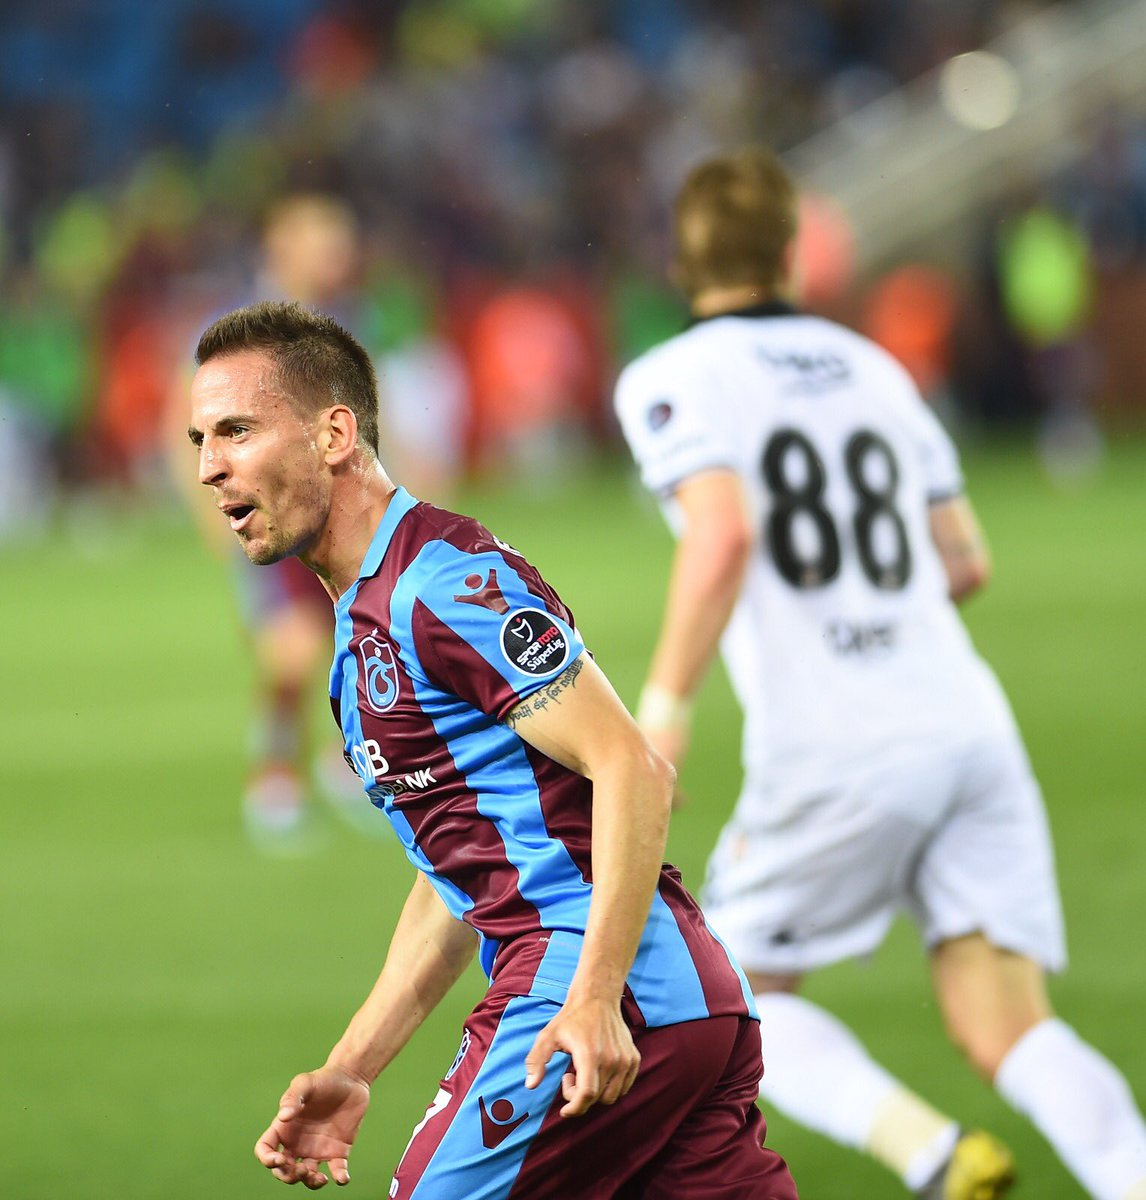 What a match!! 🙌🏻 Last game at home, full house, amazing atmosphere and great win! 💪🏻 One last game to go and anything can happen. Let's focus so we can end up big. ✌🏻💙❤️ #trabzonspor🔵🔴 #turkey🇹🇷 #jp47 #portugal🇵🇹